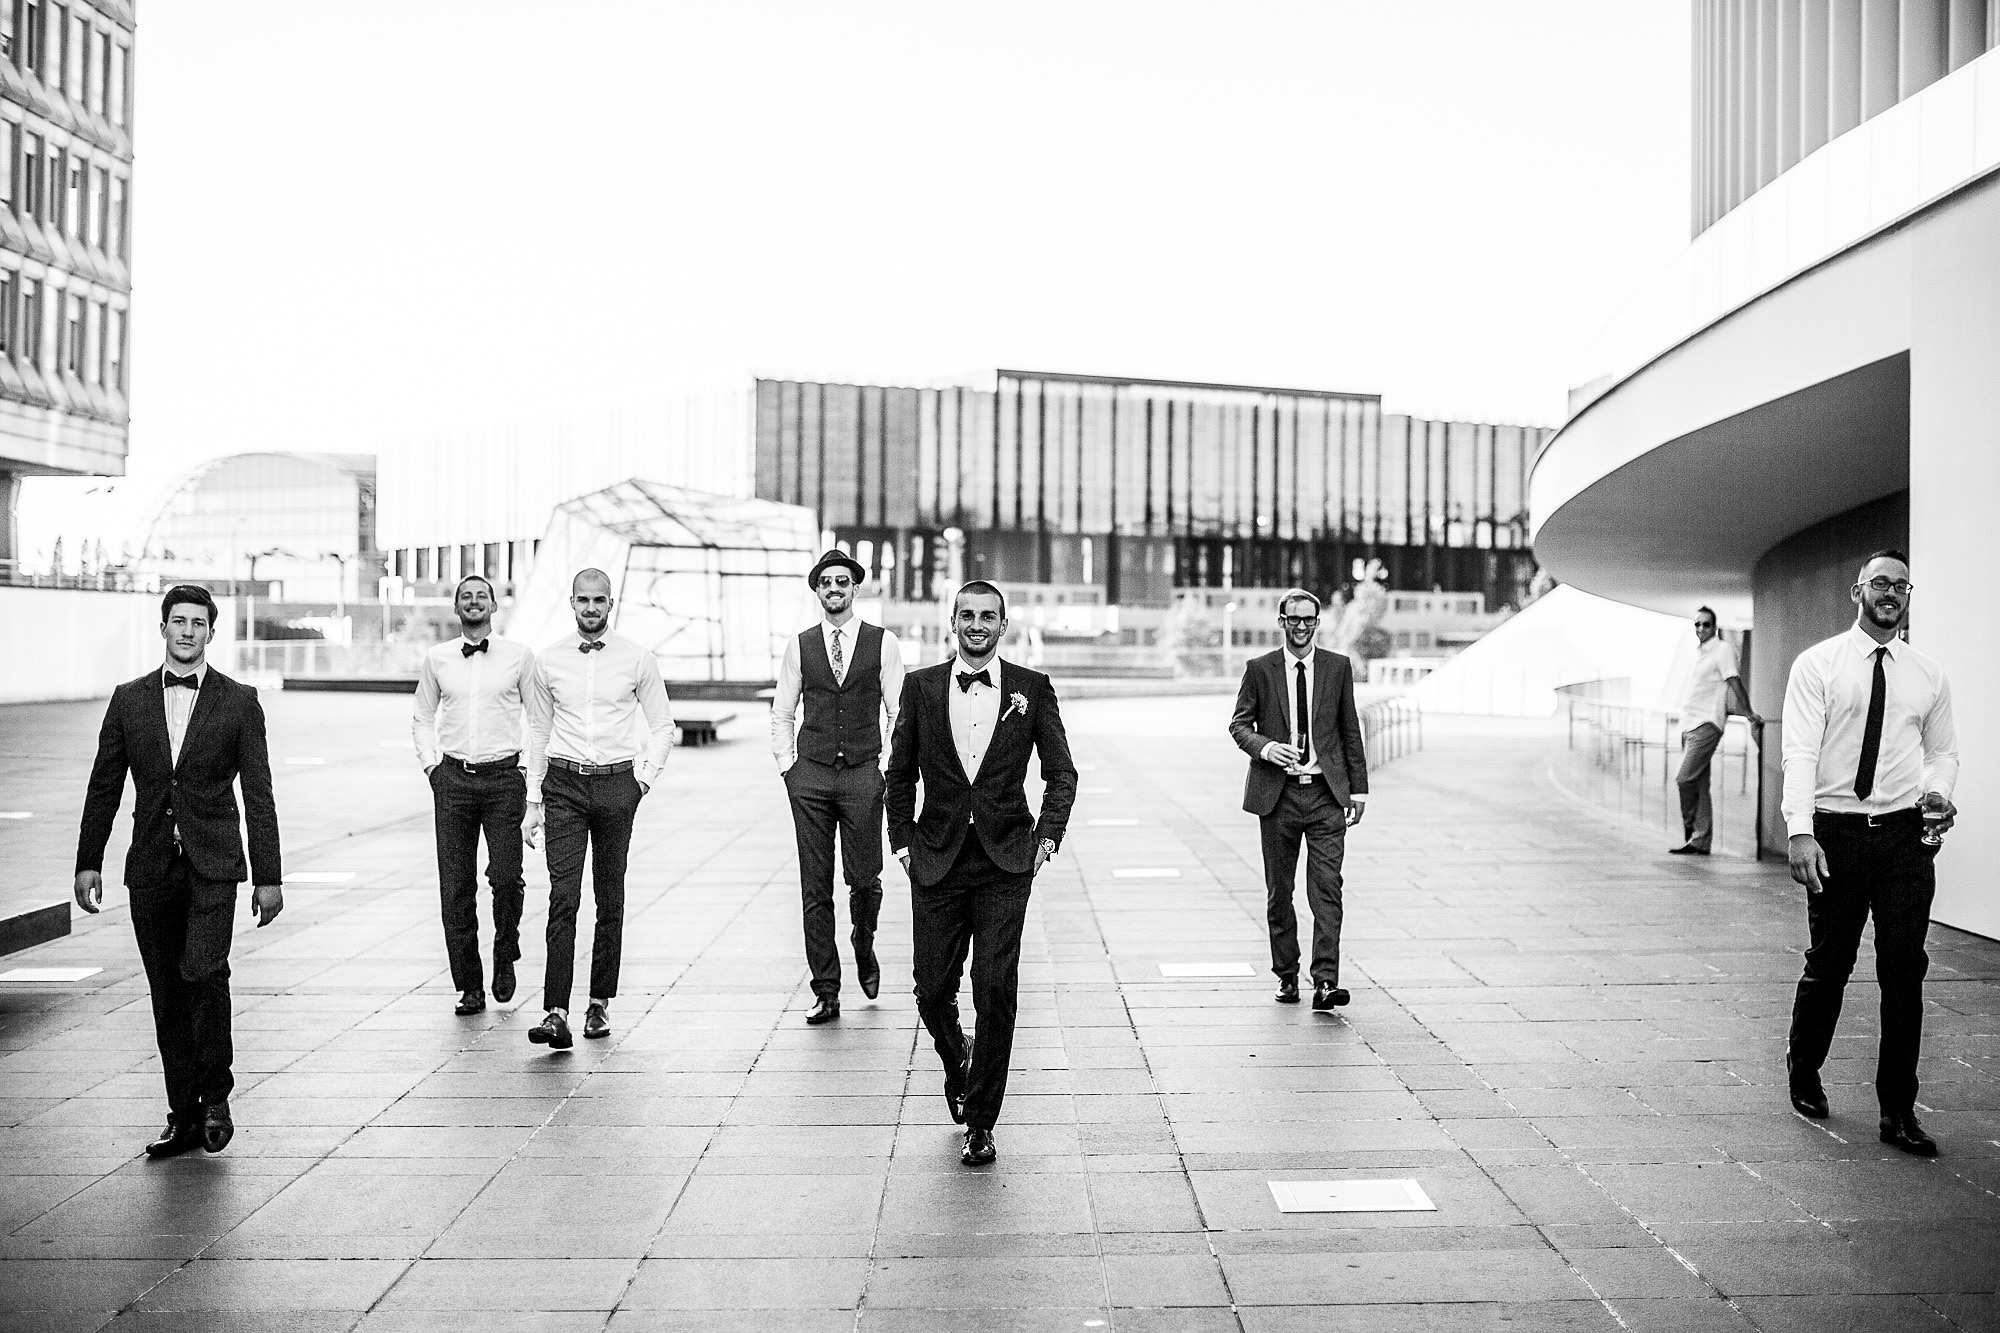 Luxemburg, groom, suit, weddingsuit, wedding, smile, lächeln, bestday, blackandwhite, drinks